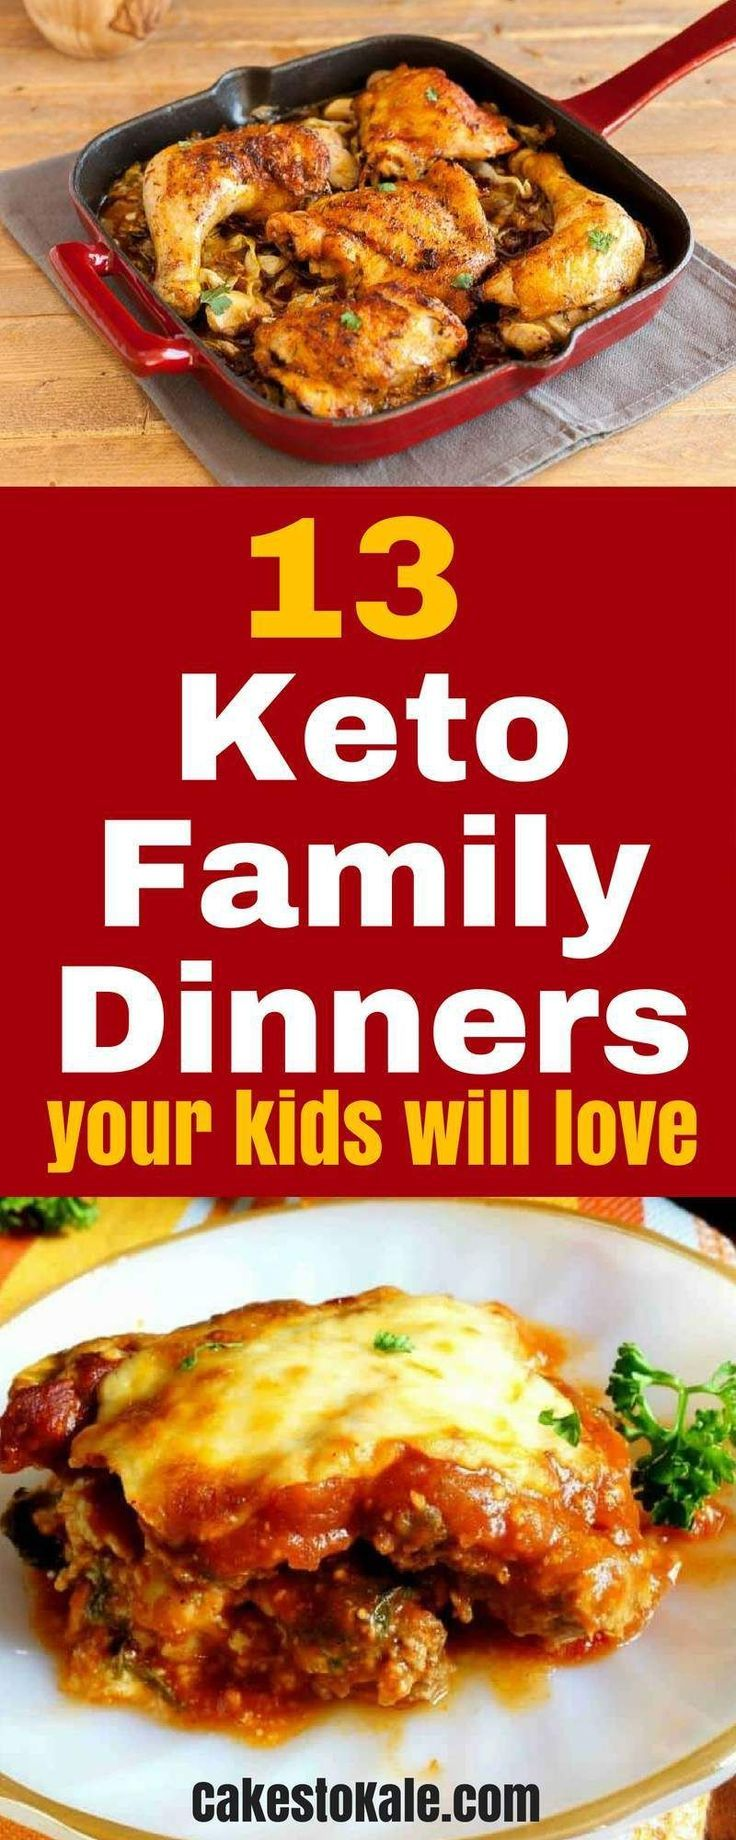 13 Easy Keto Family Meals - Low Carb Dinners